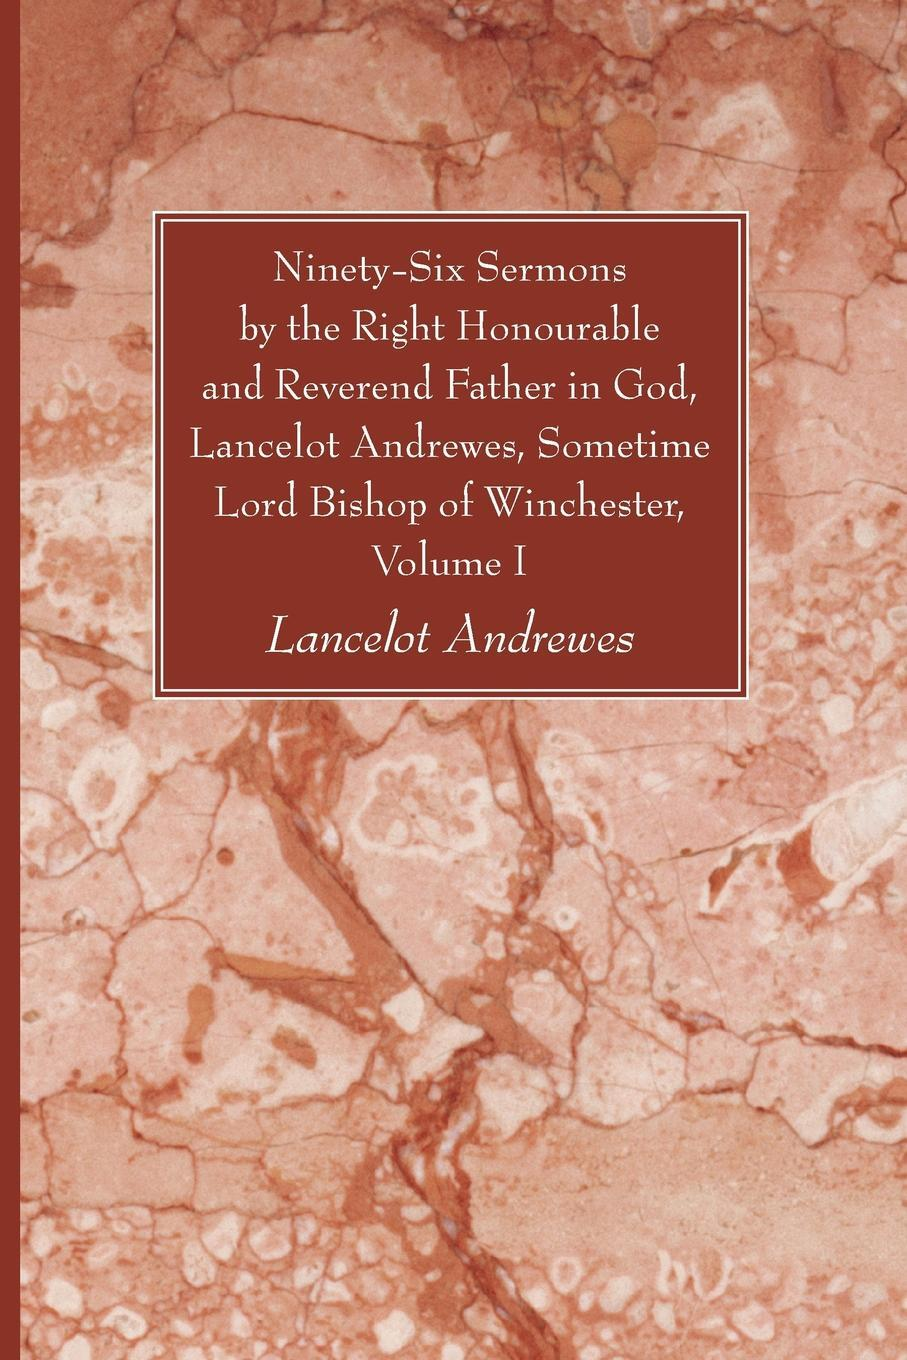 Ninety-Six Sermons by the Right Honourable and Reverend Father in God, Lancelot Andrewes, Sometime Lord Bishop of Winchester, Vol. I